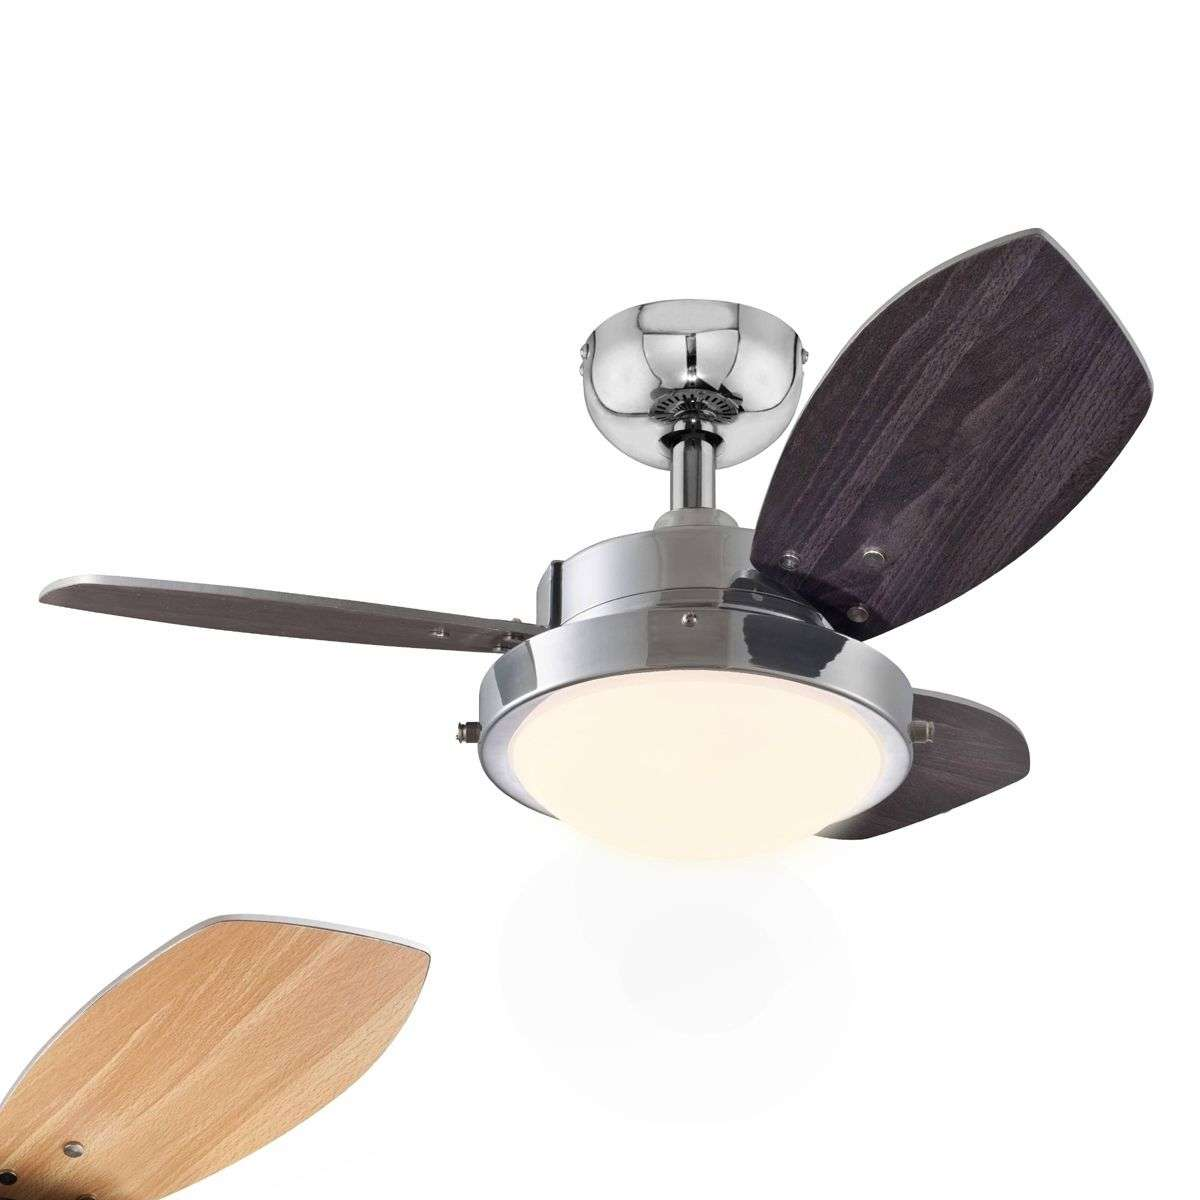 Wenge ceiling fan with halogen lamp wenge ceiling fan with halogen lamp mozeypictures Choice Image